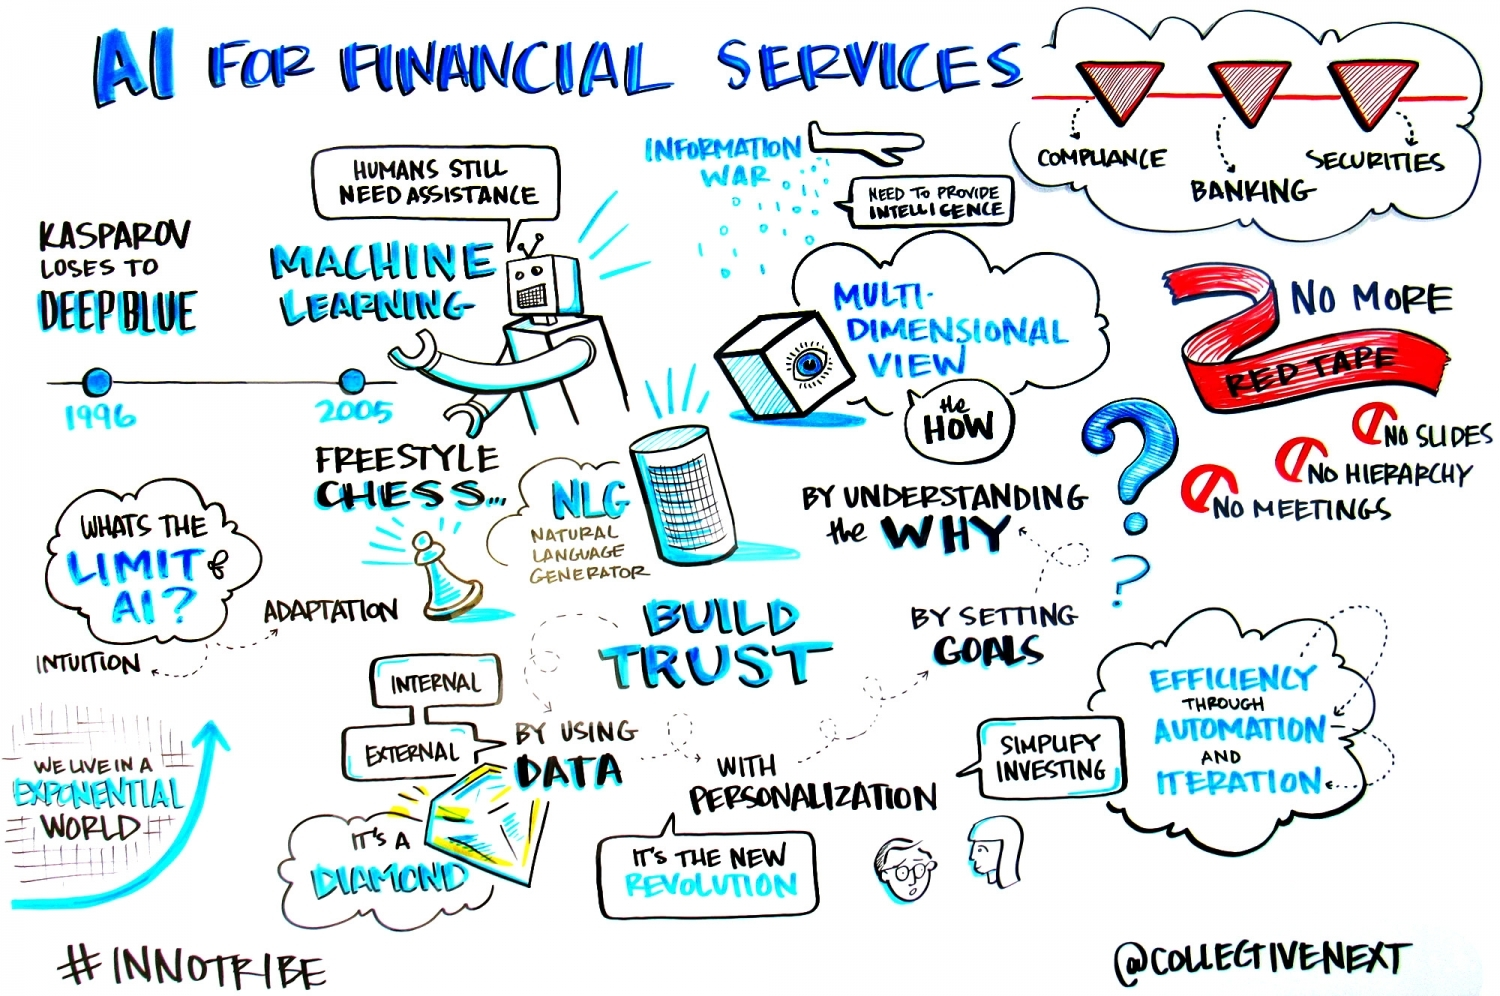 AI for Financial Services Graphic Facilitation Scribing Innotribe Collective next